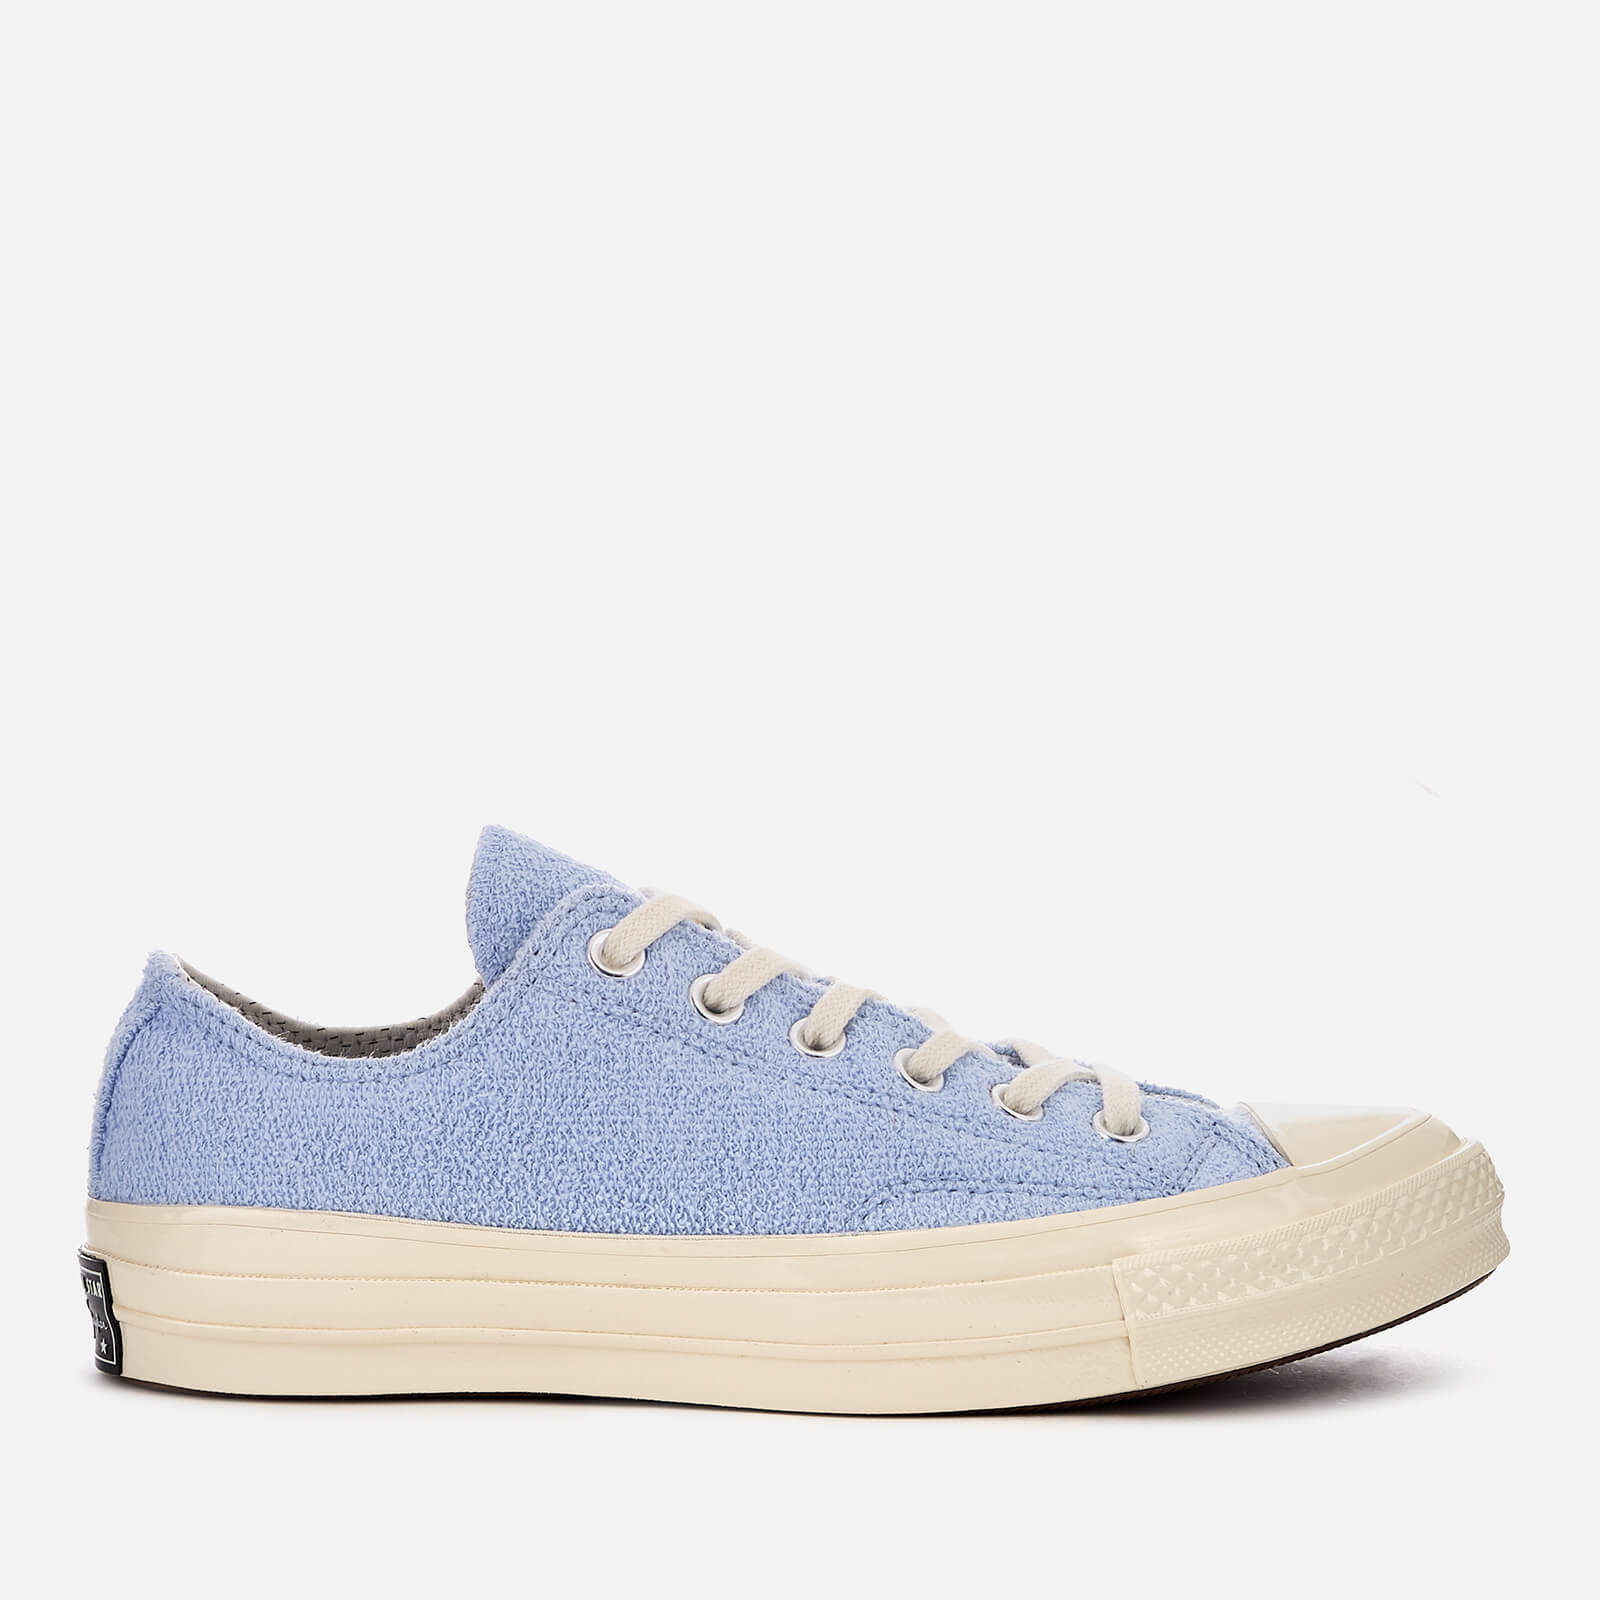 0e8d637a153e Converse Chuck Taylor All Star 70 Ox Trainers - Blue Chill - Free UK  Delivery over £50